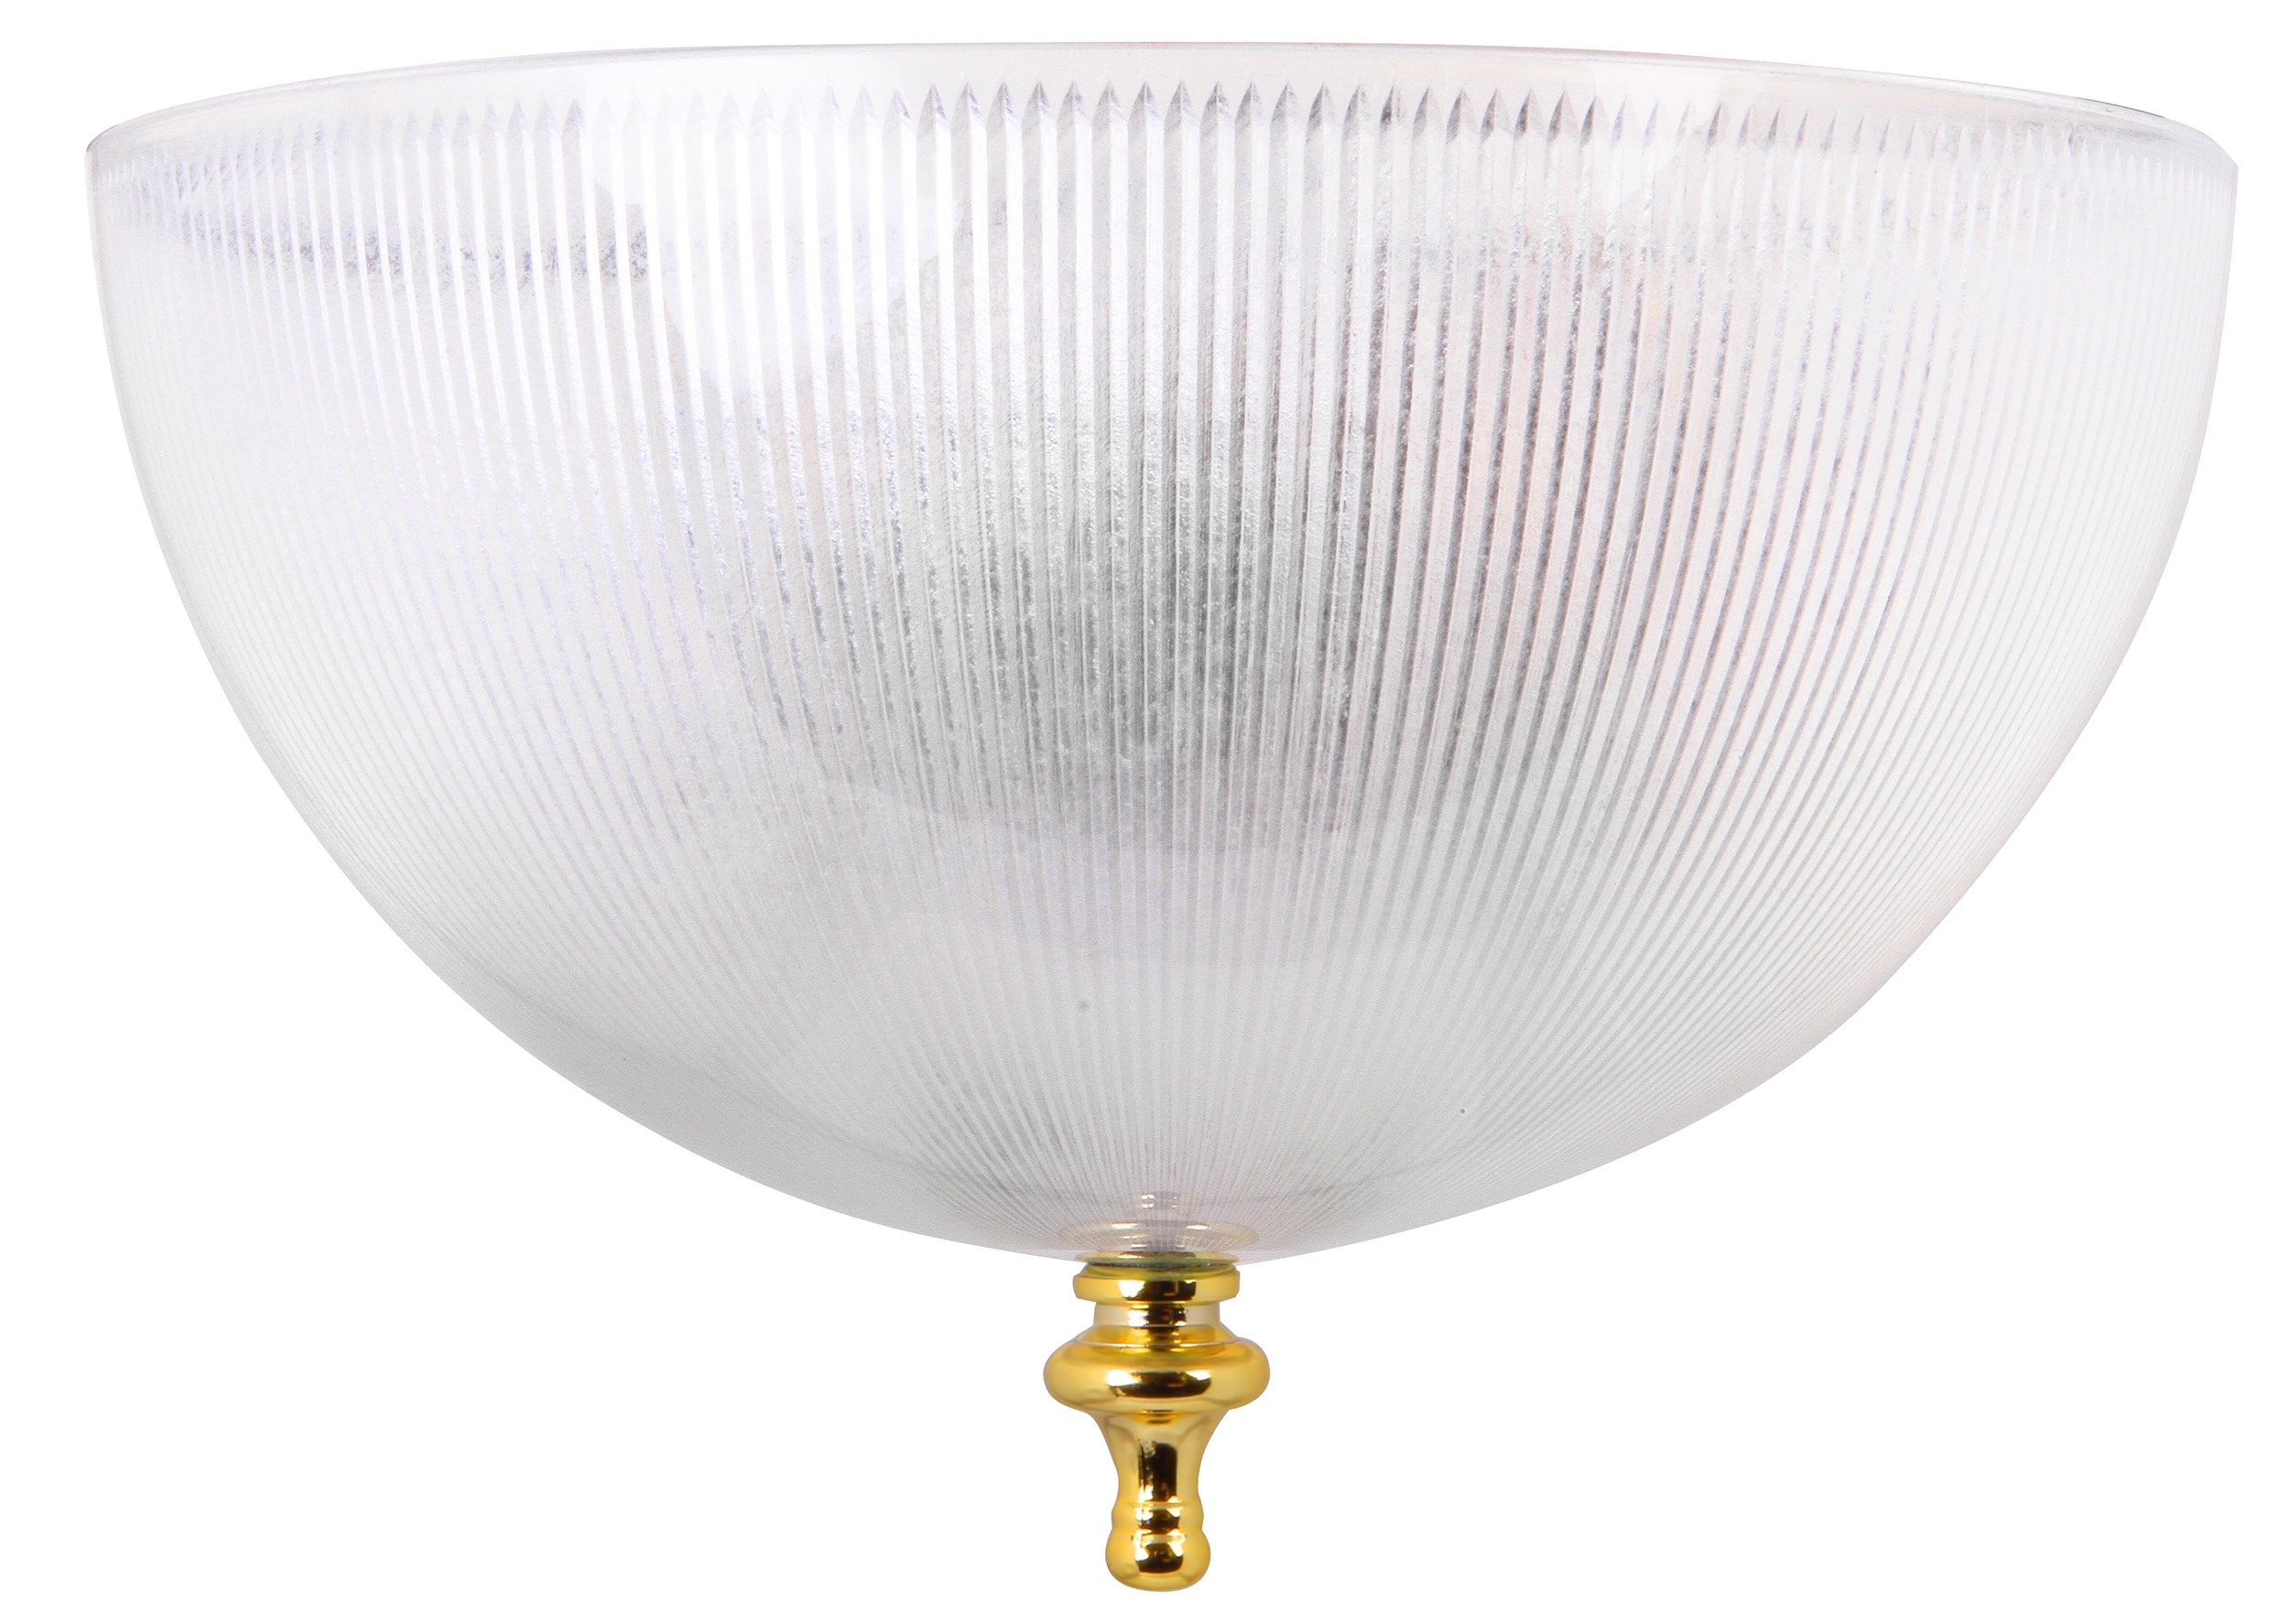 clip on ceiling light shade ribbed clear finish ebay. Black Bedroom Furniture Sets. Home Design Ideas